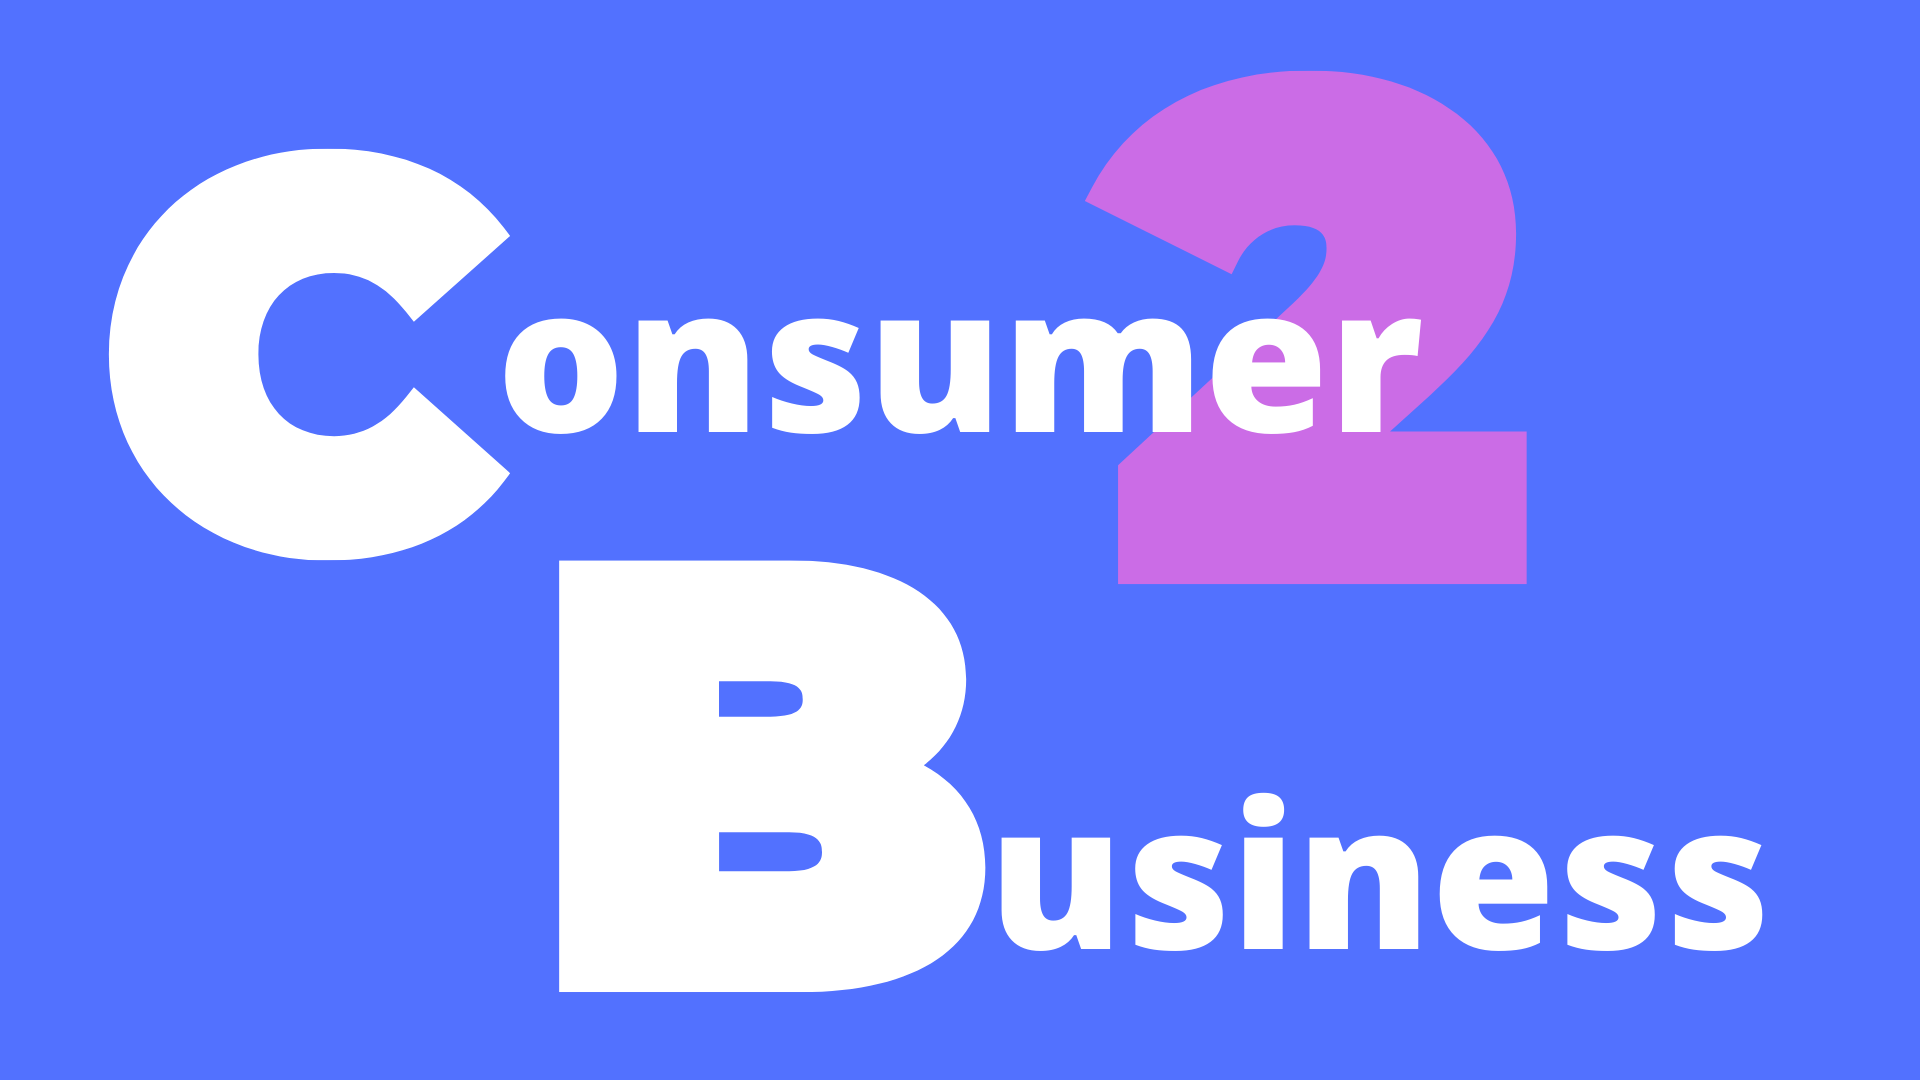 eCommerce consumer to business